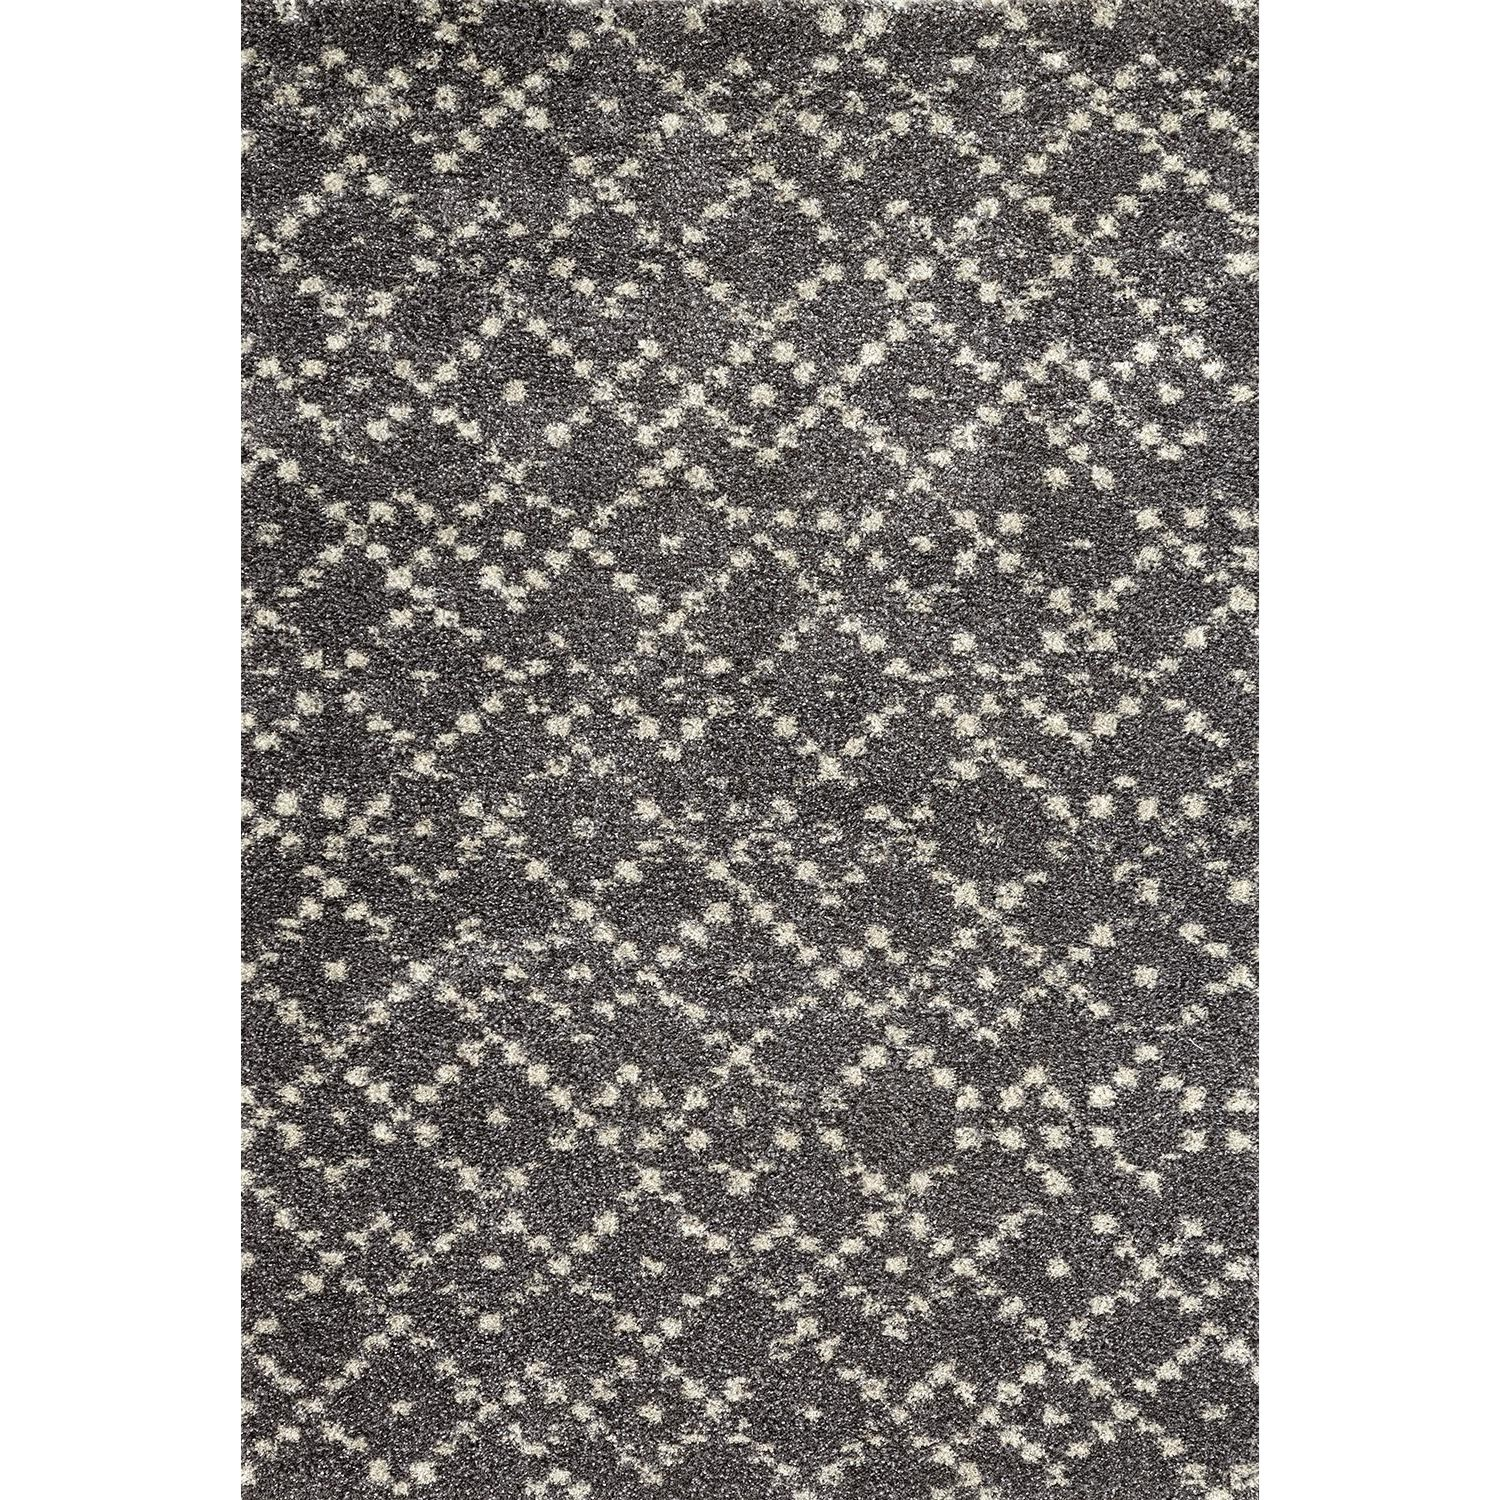 Prima Shag 7'11x10'10 Zenata Taupe Rug by Karastan Rugs at Darvin Furniture